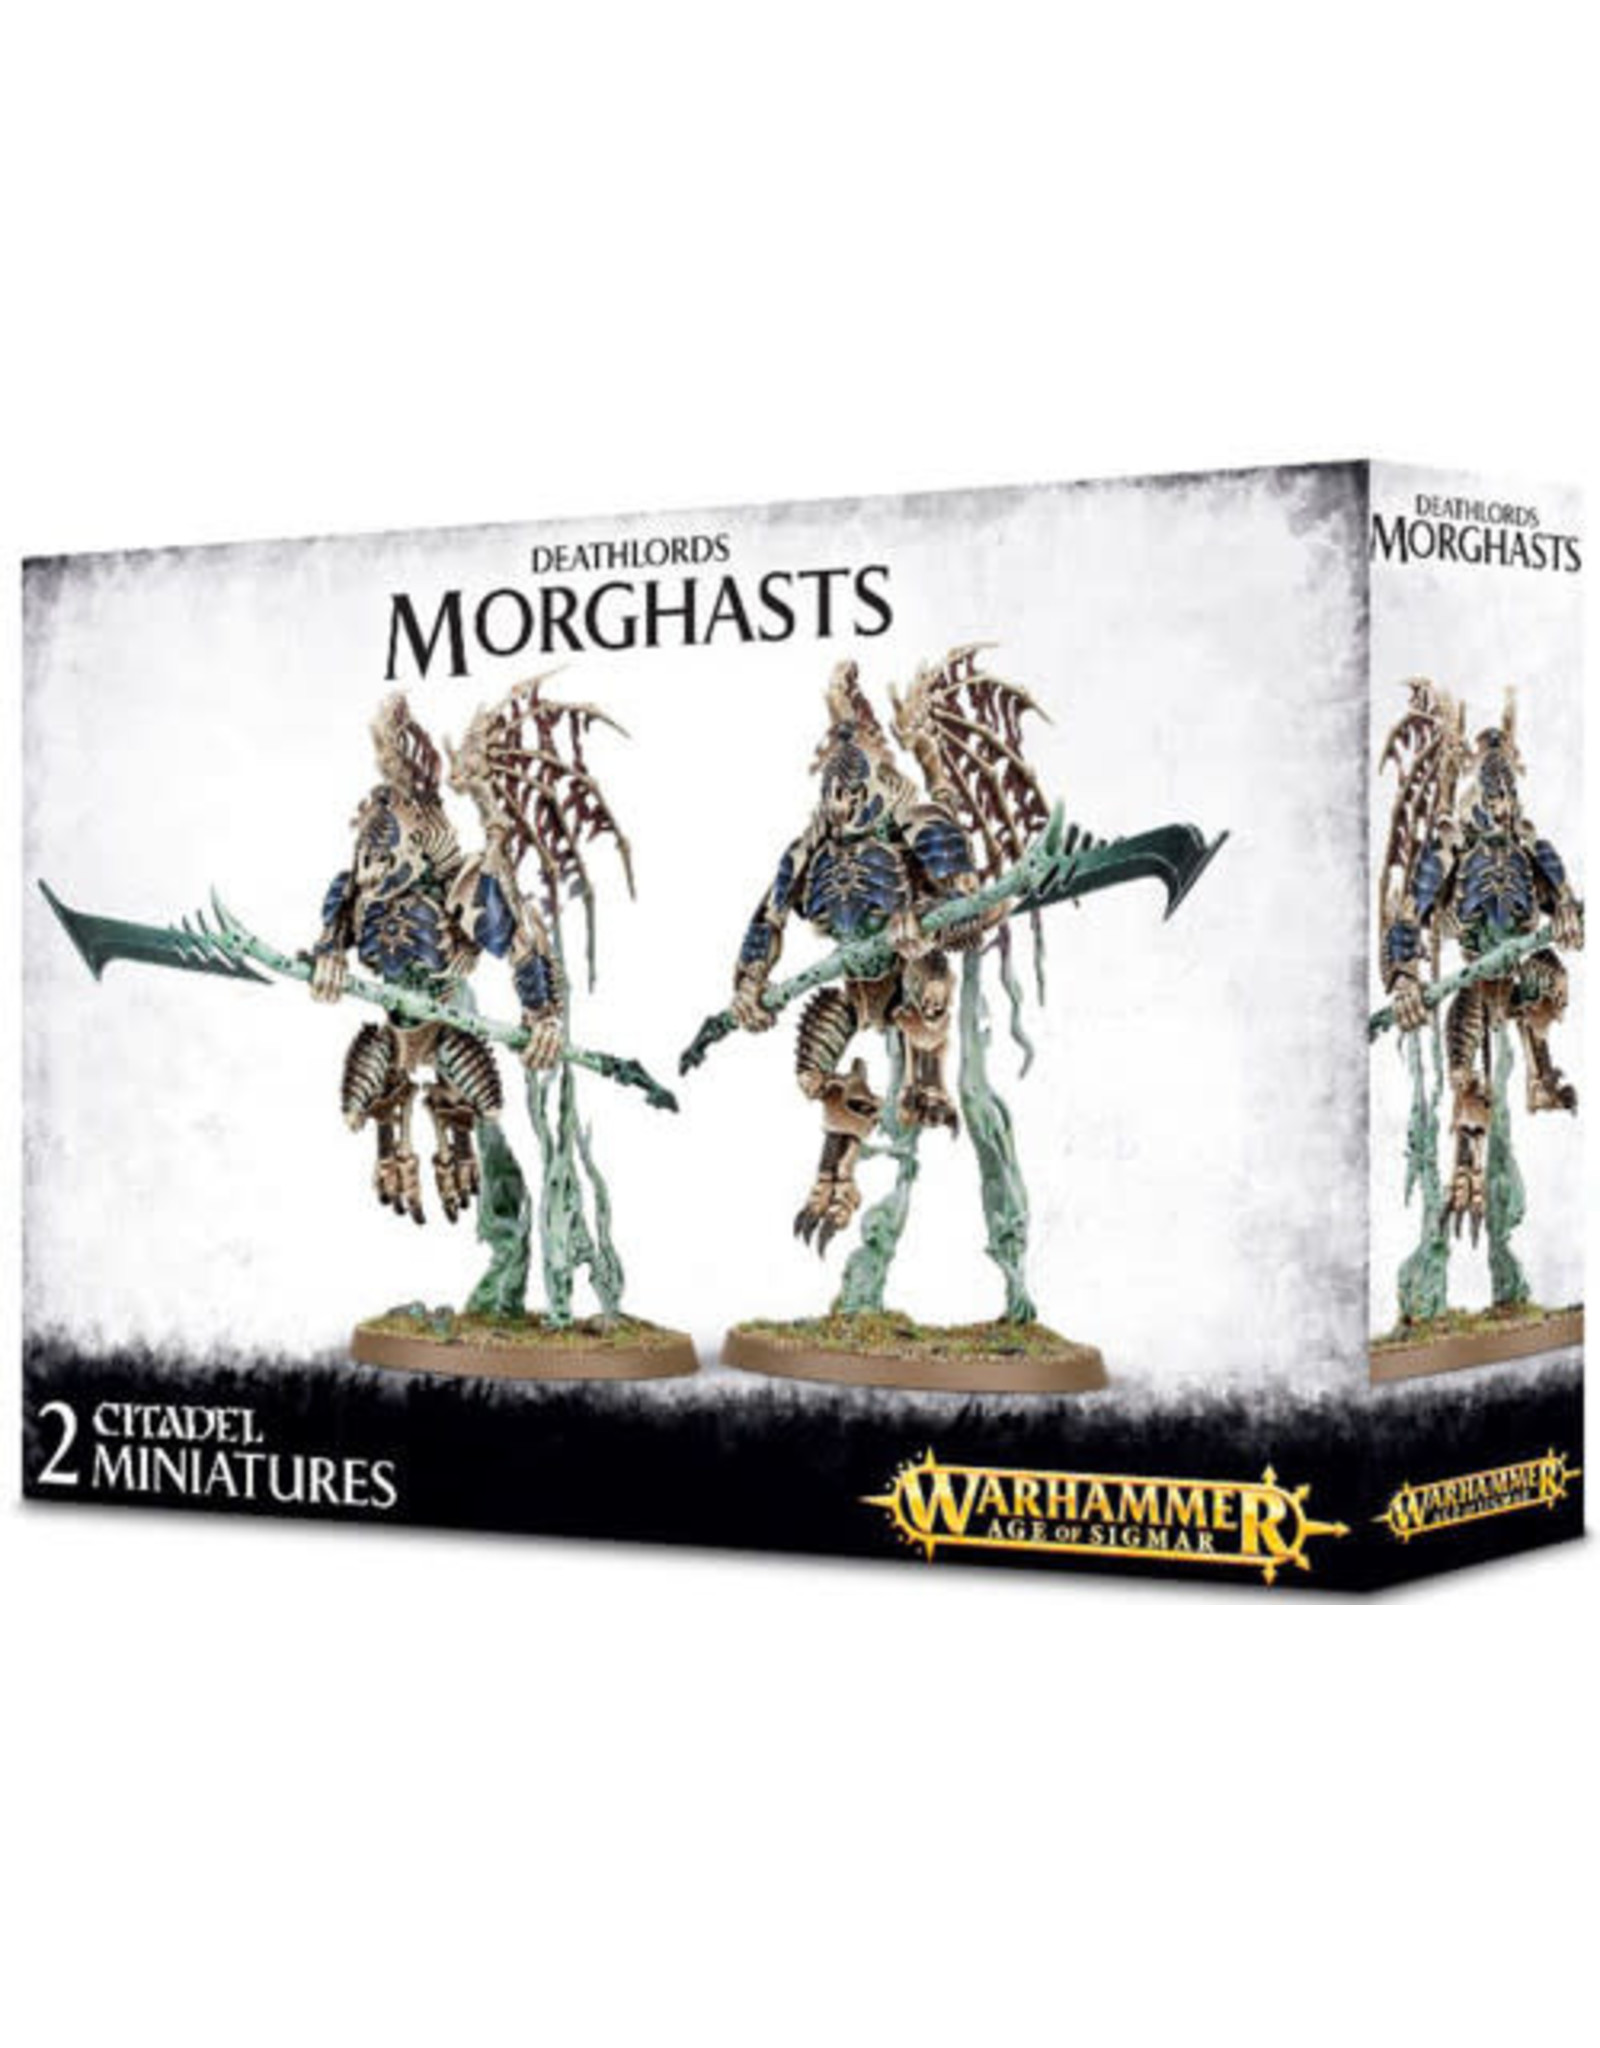 Deathlords Morghast (AOS)